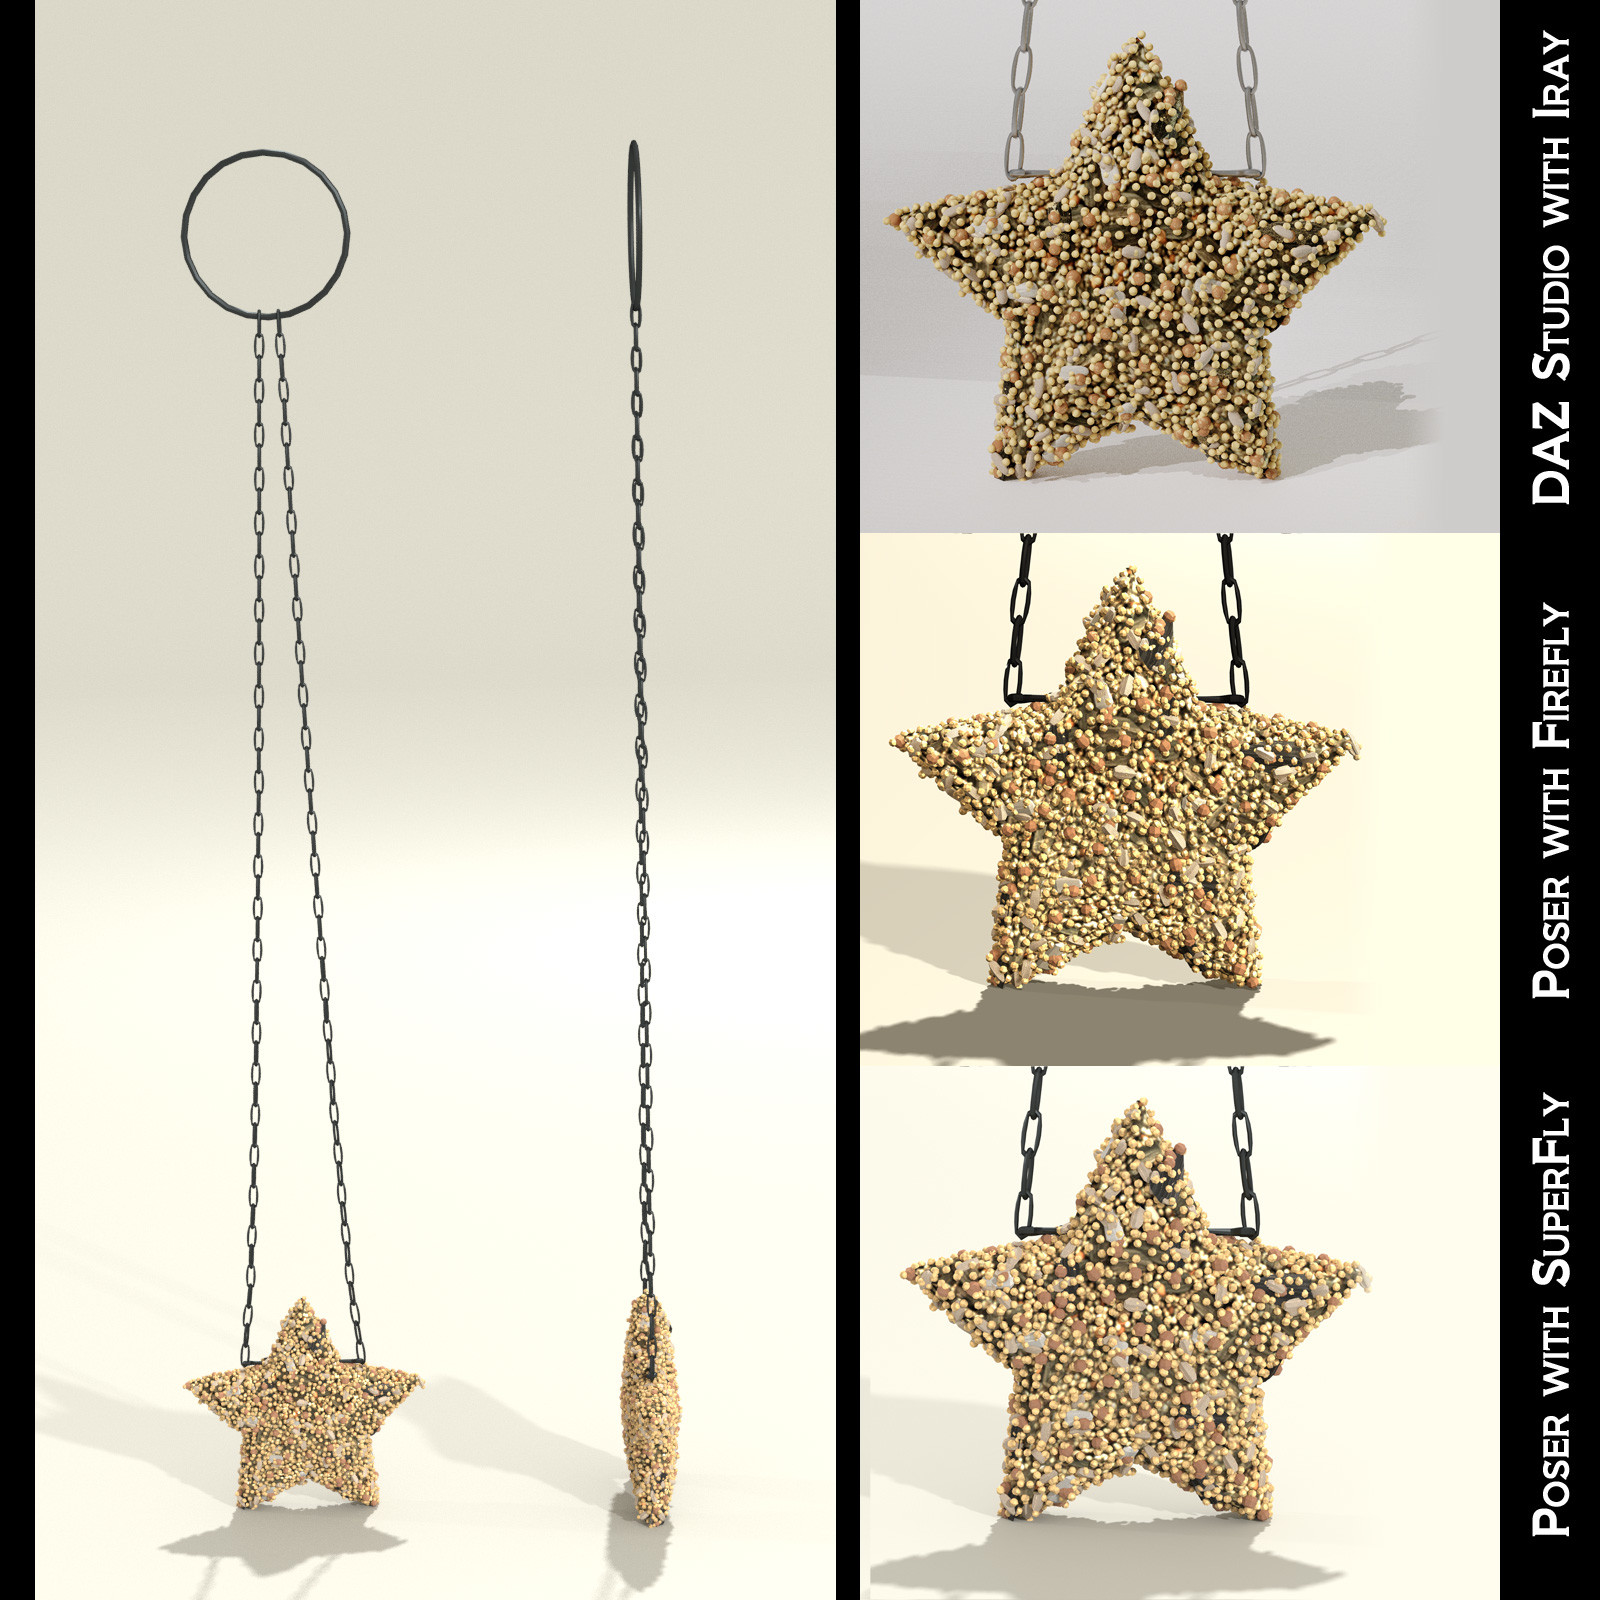 This shows the front and side views of the star-shaped seed cakes, along with closeup examples of how it looks inside each render engine.